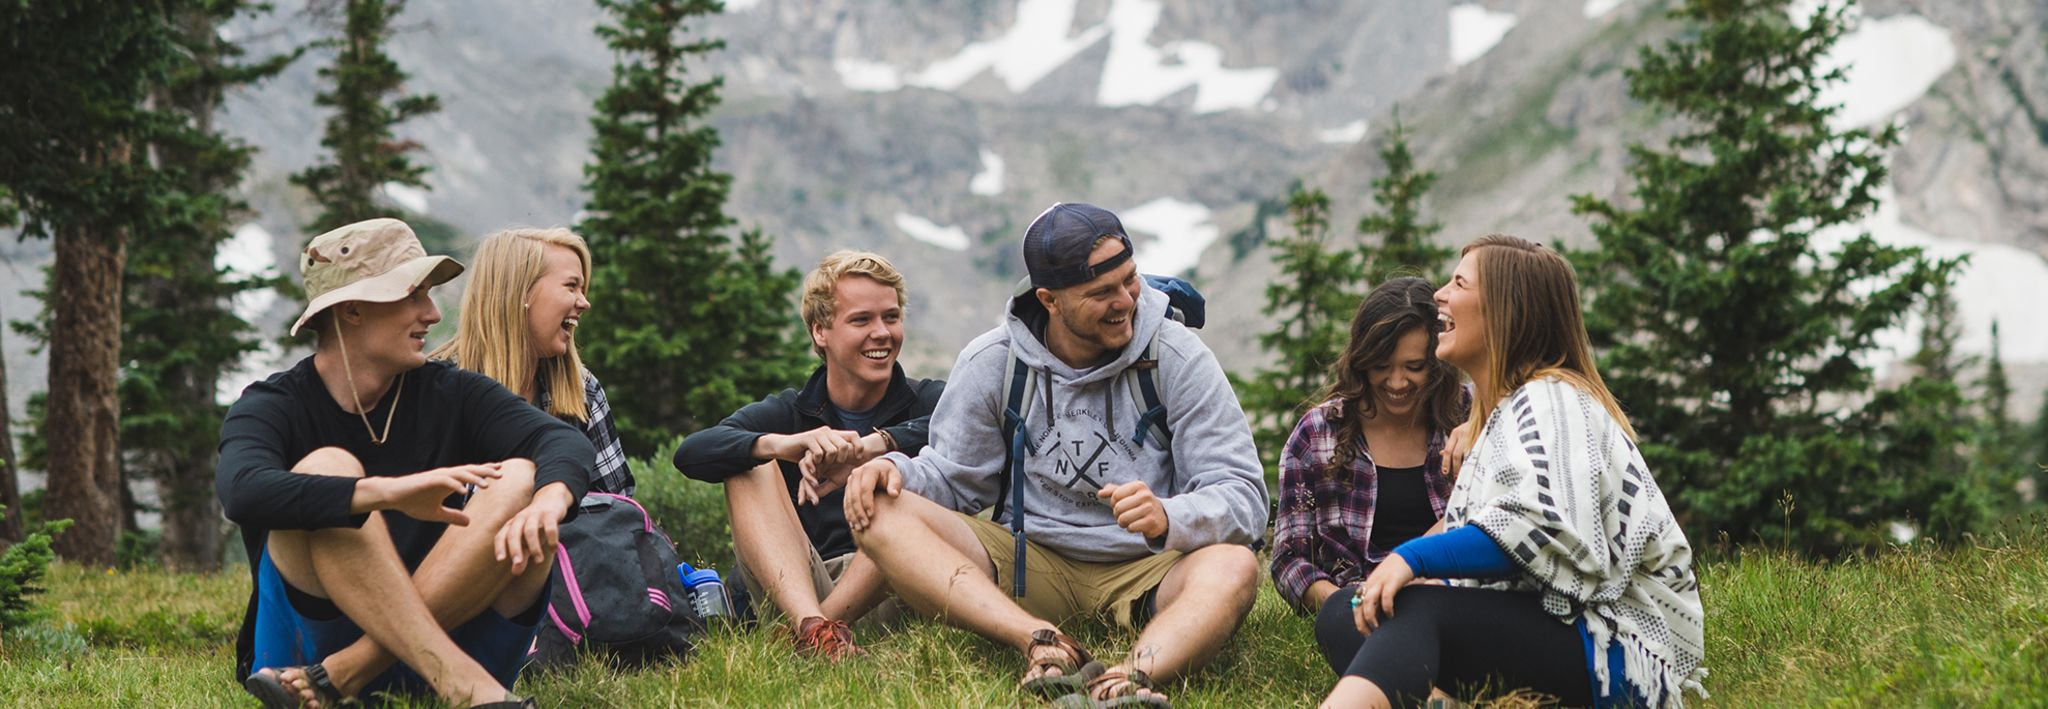 Students laughing and enjoying the mountains in Colorado.